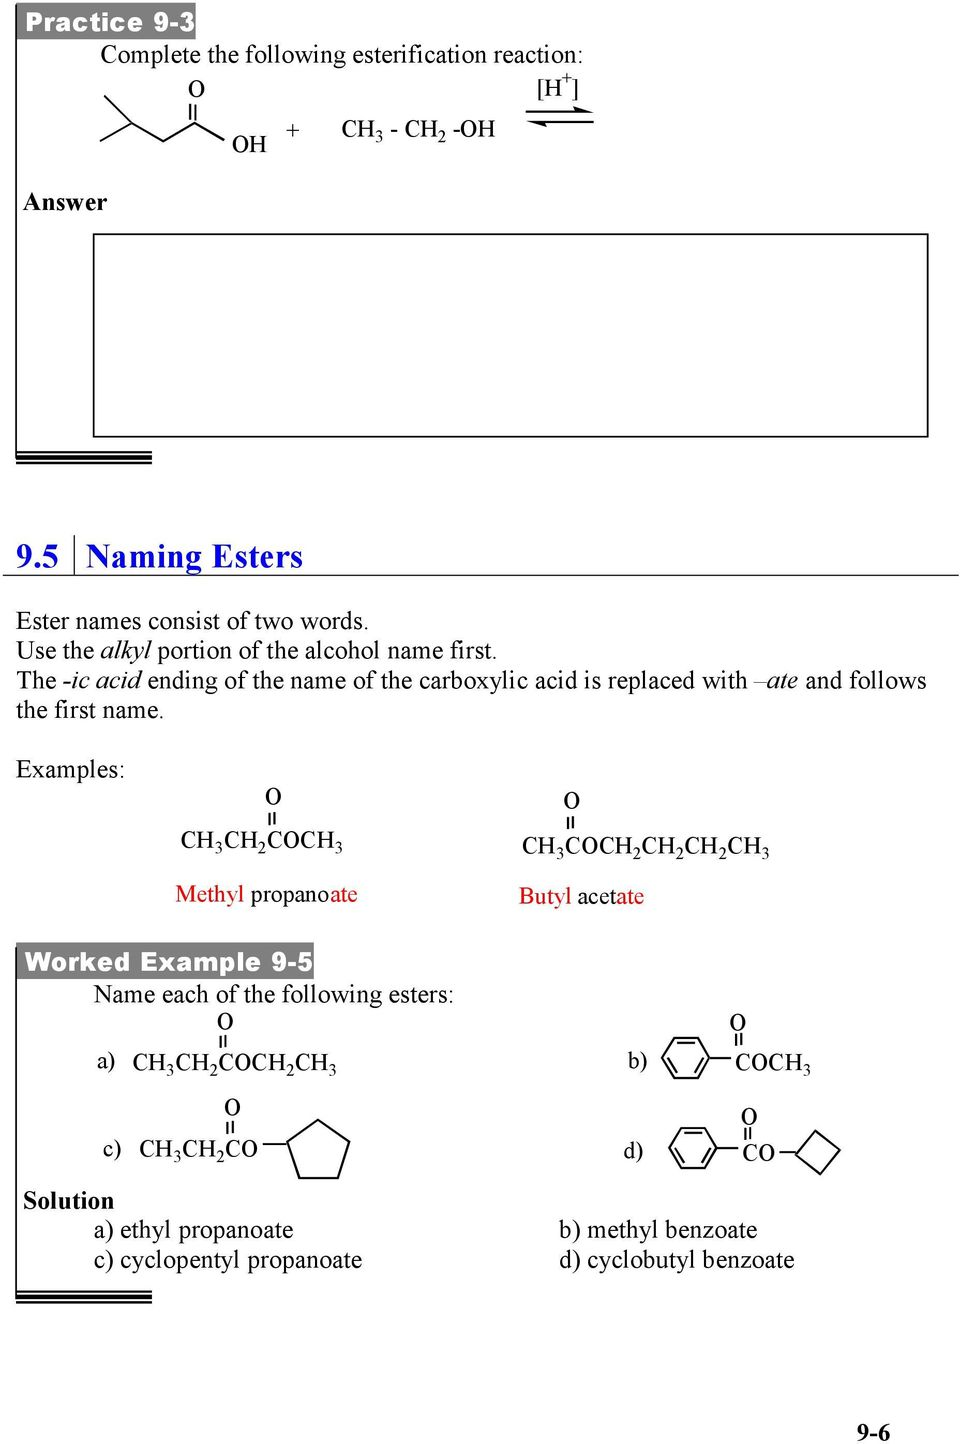 UNIT (9) CARBOXYLIC ACIDS, ESTERS, AMINES, AND AMIDES - PDF